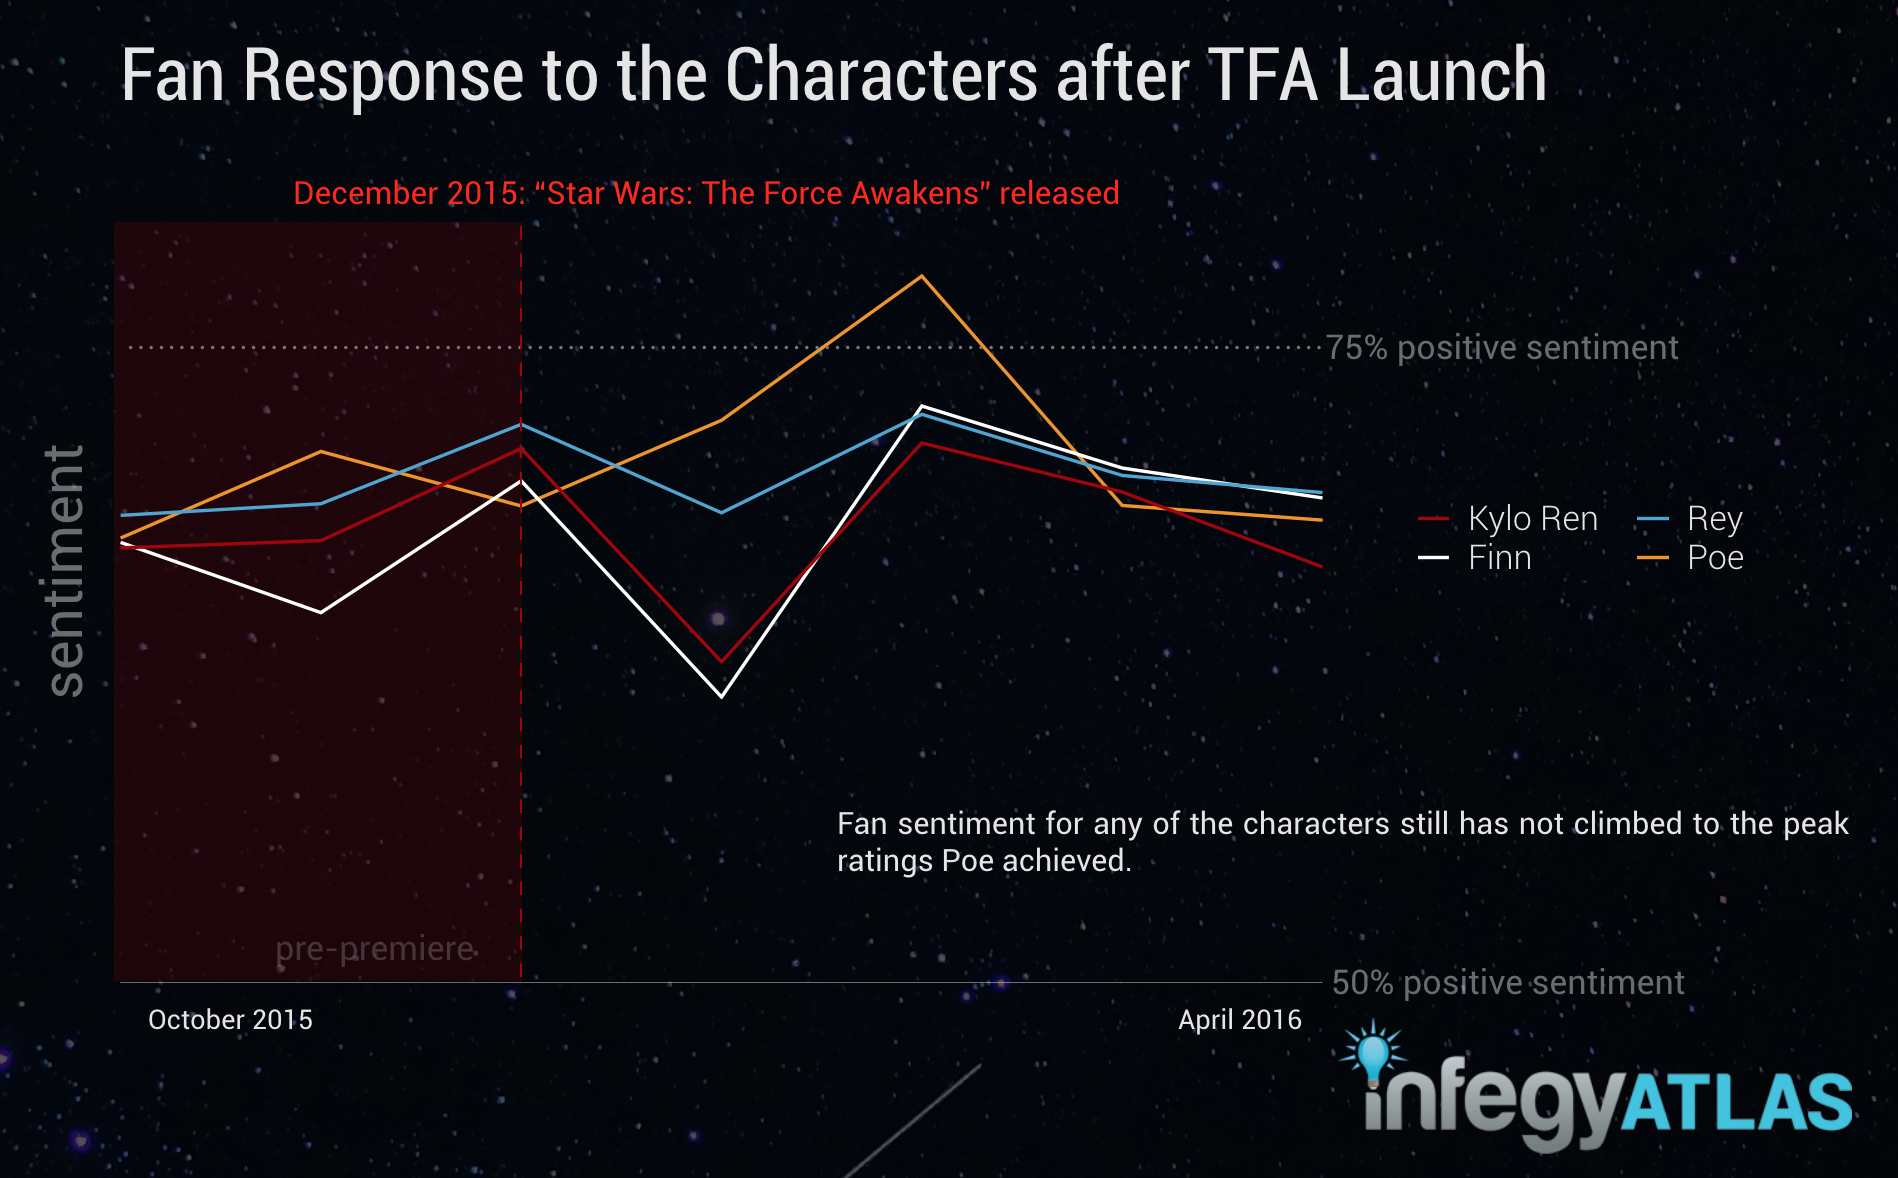 fan-response-to-characters-after-tfa-launch.png